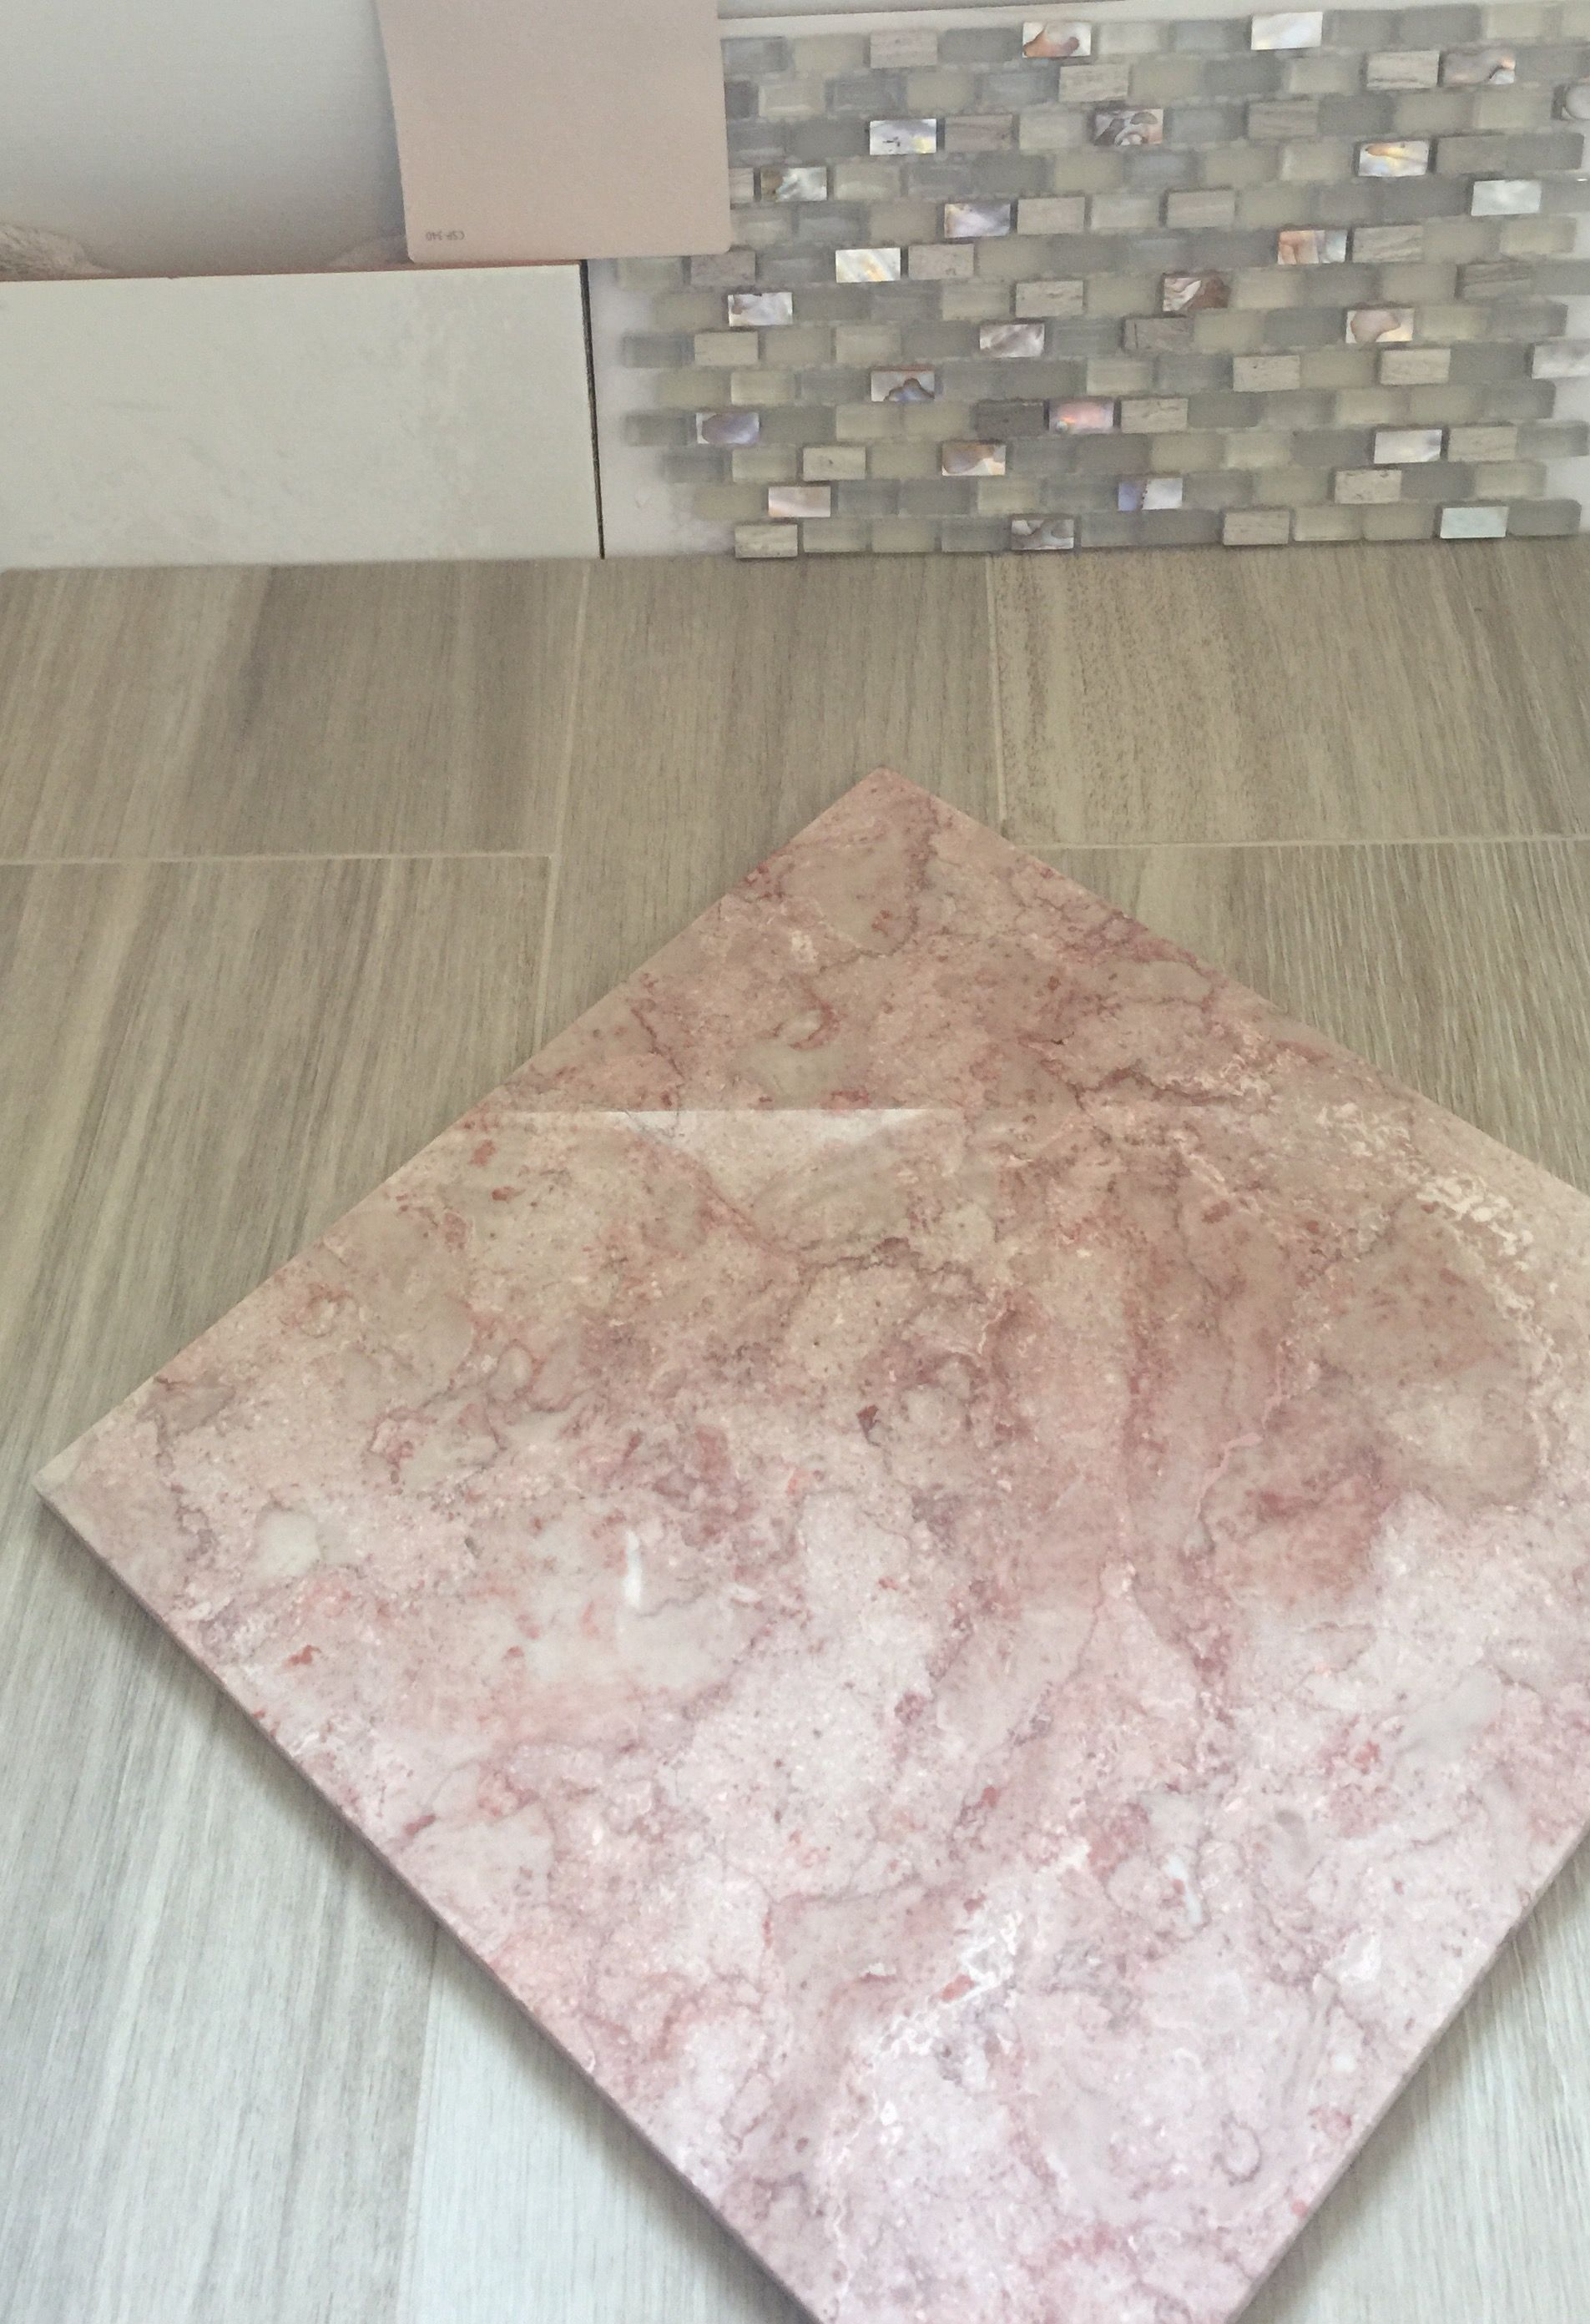 Final decision working with existing pink marble countertops working with existing pink marble countertops madera beige plank flooring subway tile prism latte gem pearl sea shore mosaic accent in shower dailygadgetfo Image collections